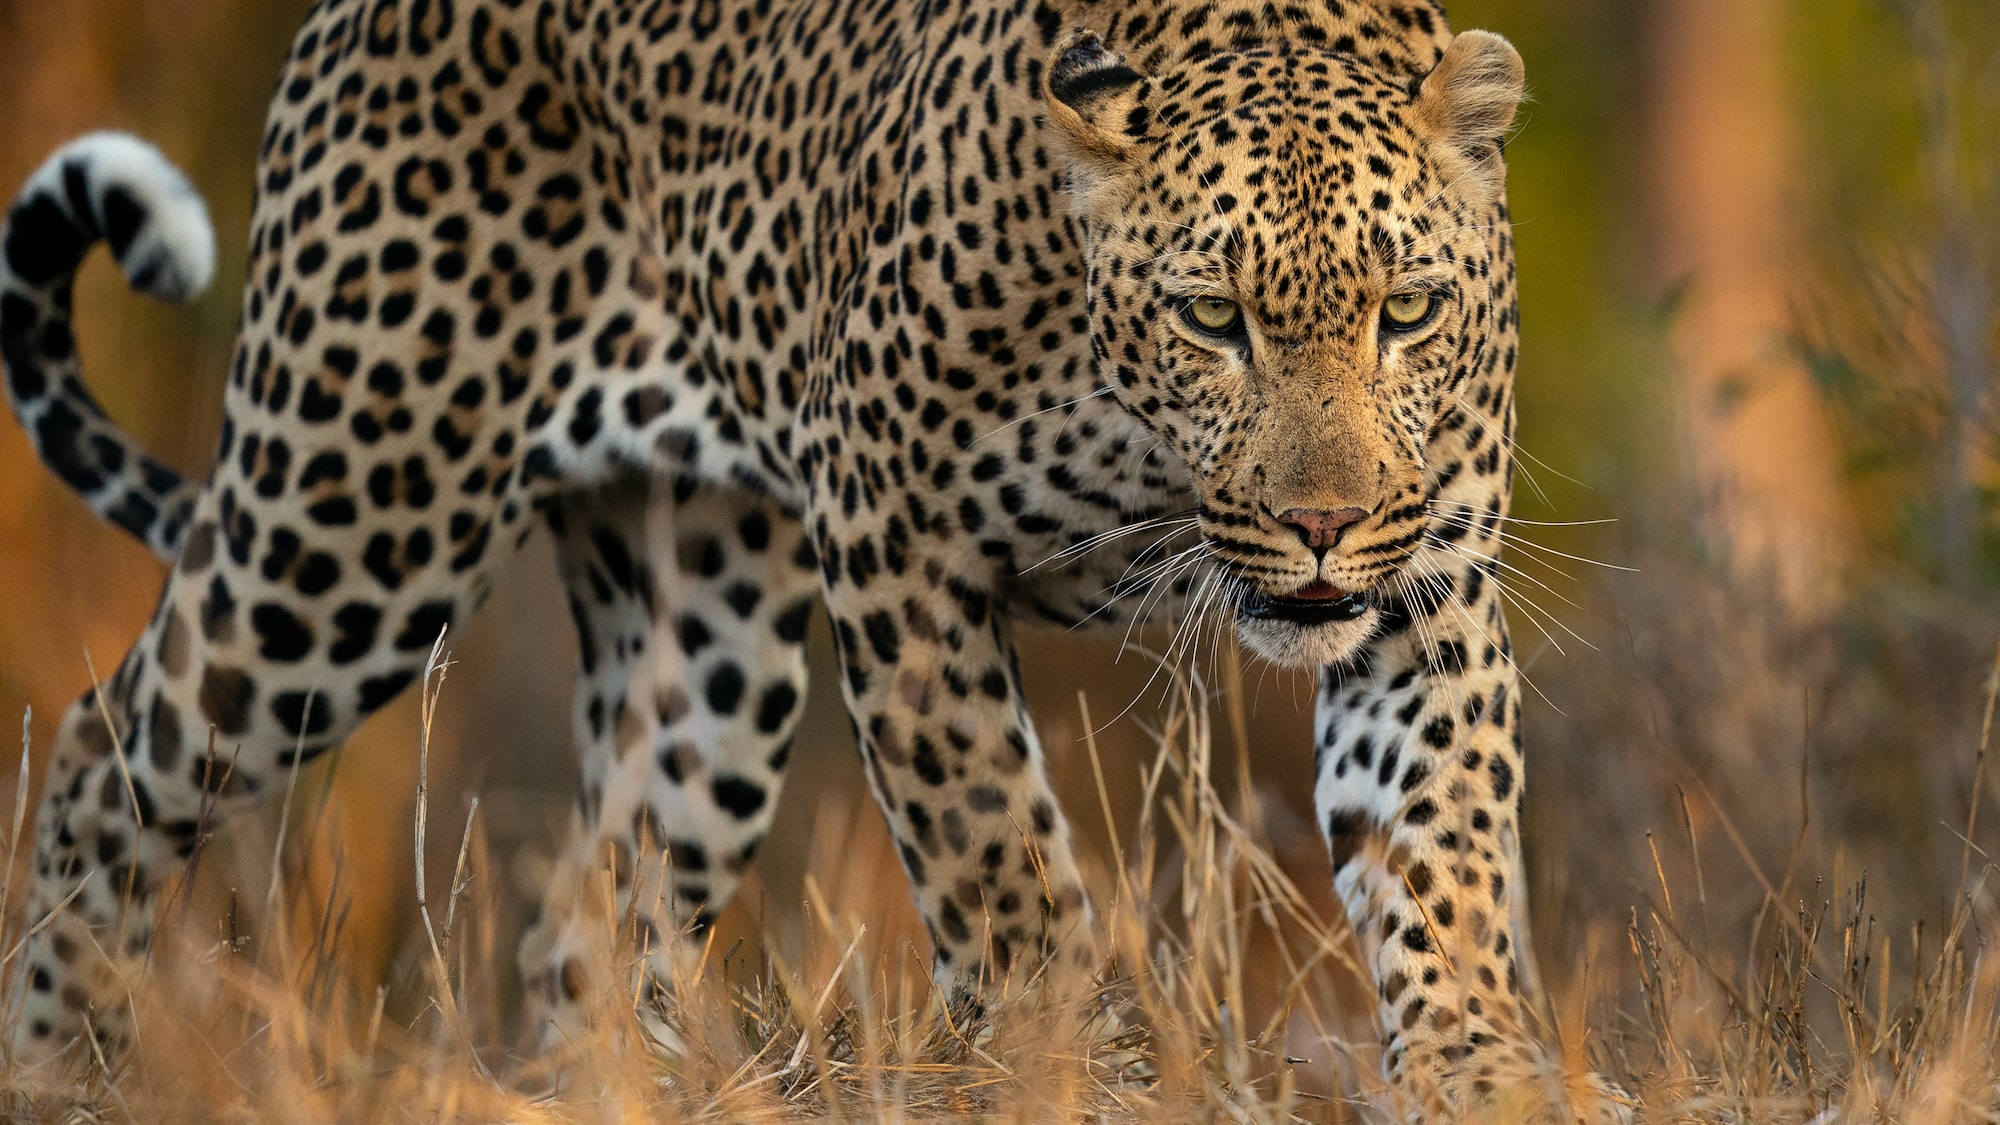 Male leopard in the safari